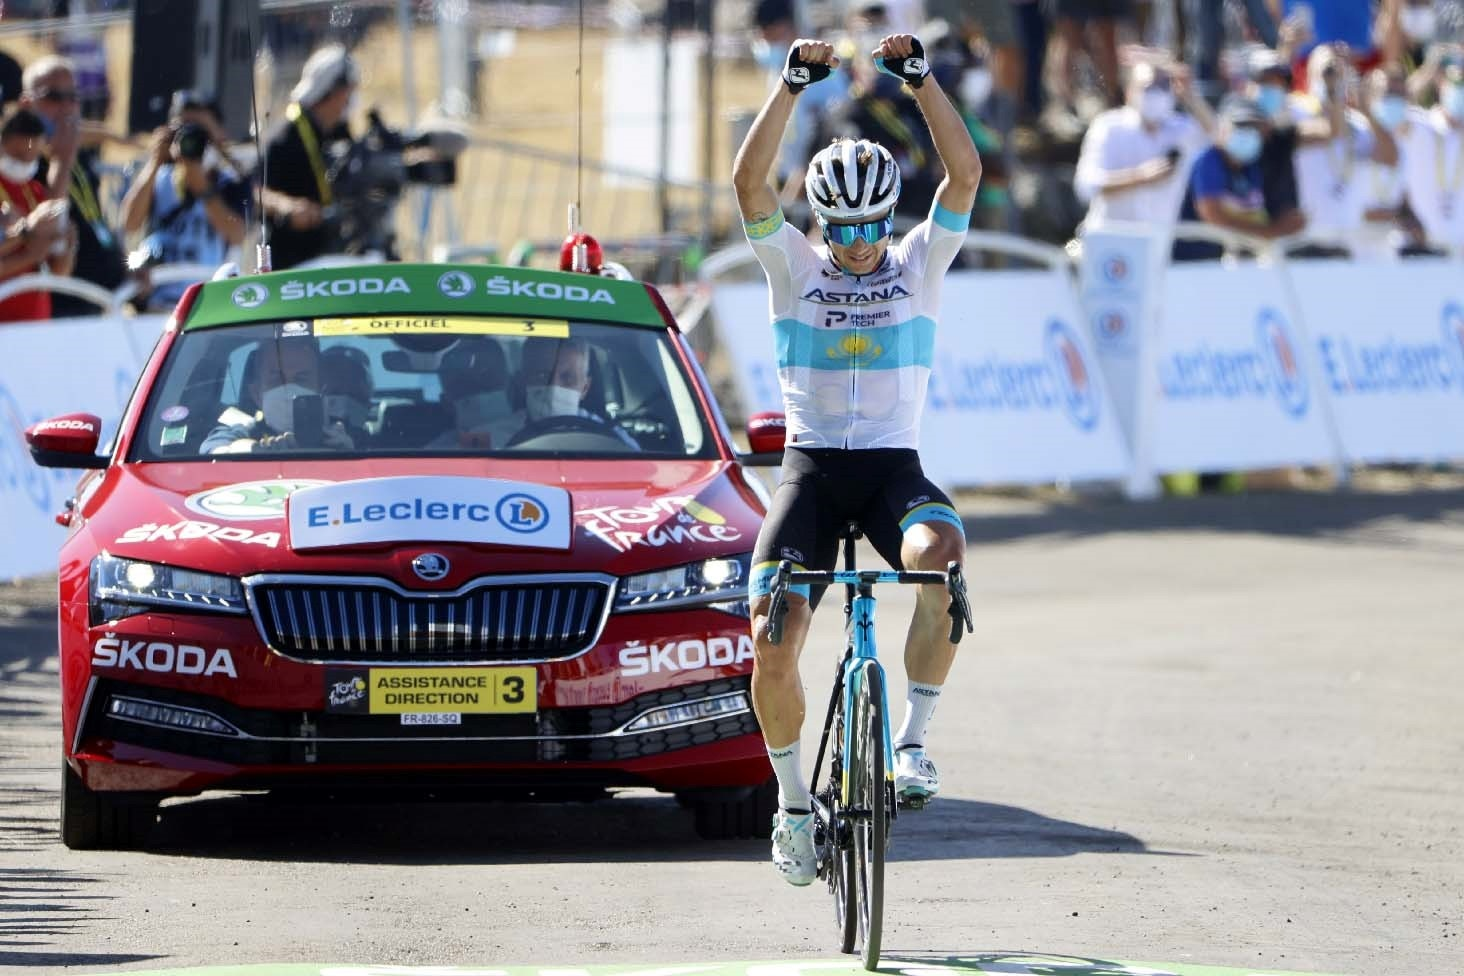 Northwave - What a race! Alexey Lutsenko, Astana Team Pro Athlete, wins the 6th stage of the Tour De France